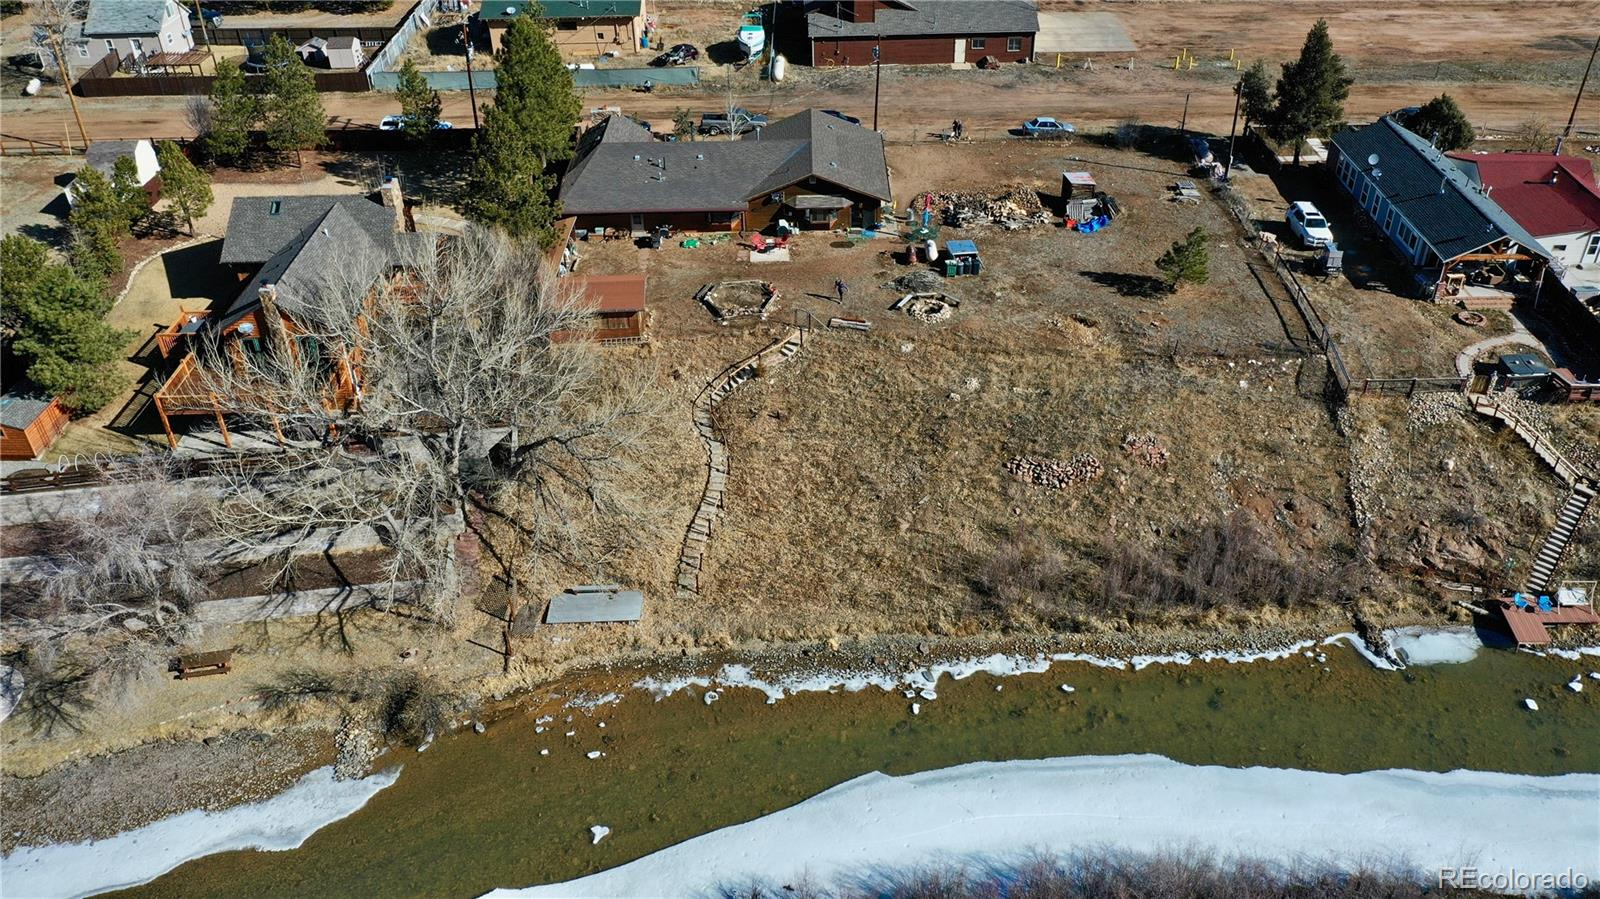 MLS# 3485603 - 4 - 16697 Jefferson Street, Pine, CO 80470